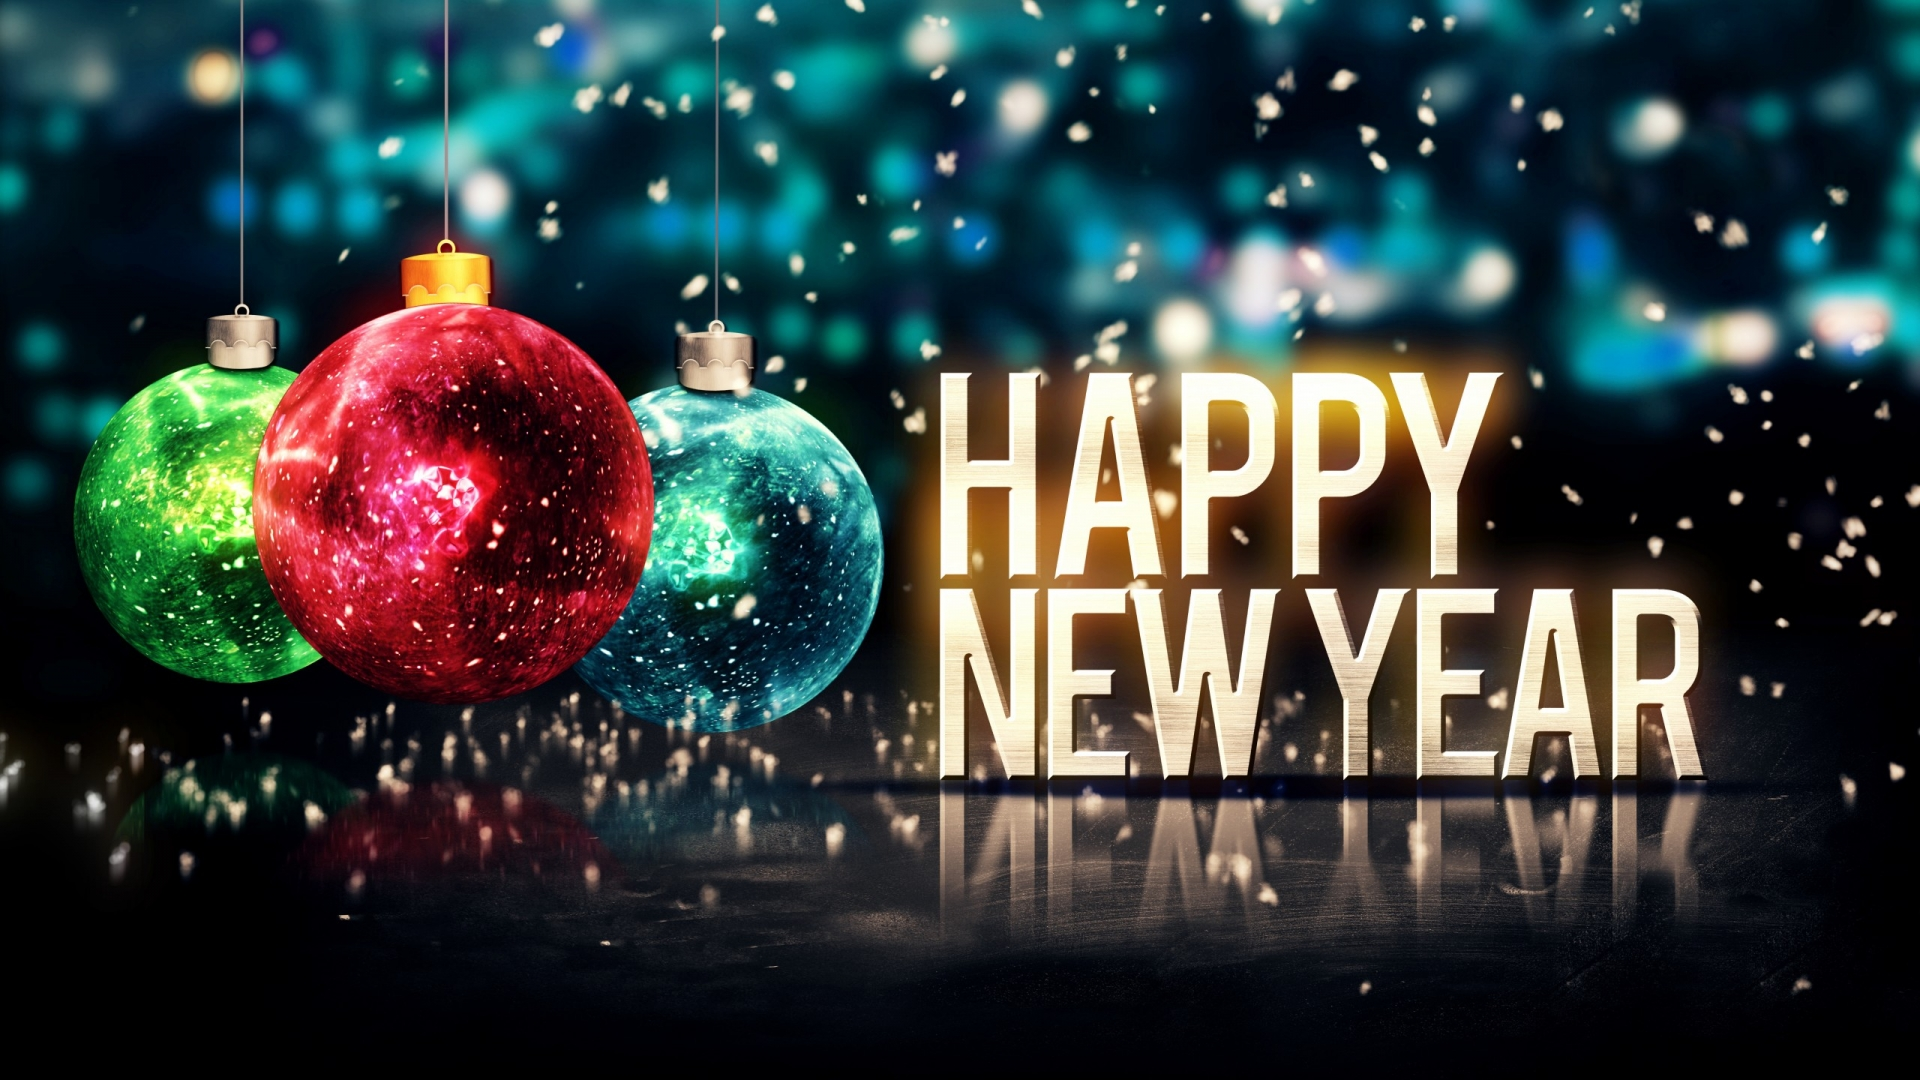 Happy-new-year-HD-desktop-background-free-download-wallpaper-wpc5805681